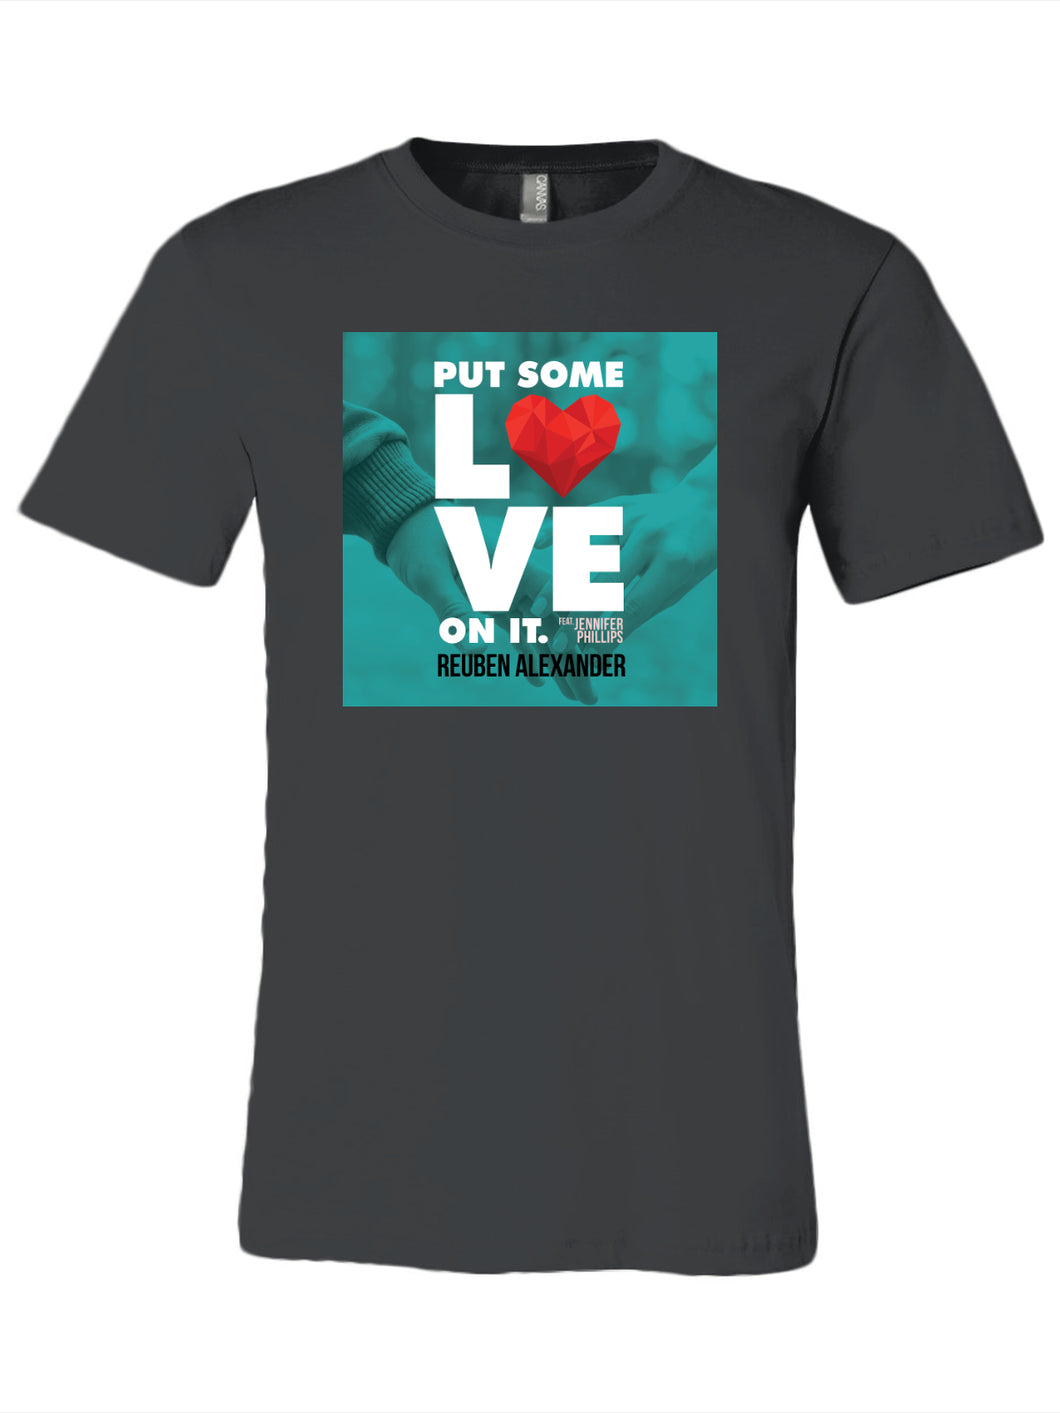 Put Some Love On It feat. Jennifer Phillips (Single Cover) - Men's T-Shirt